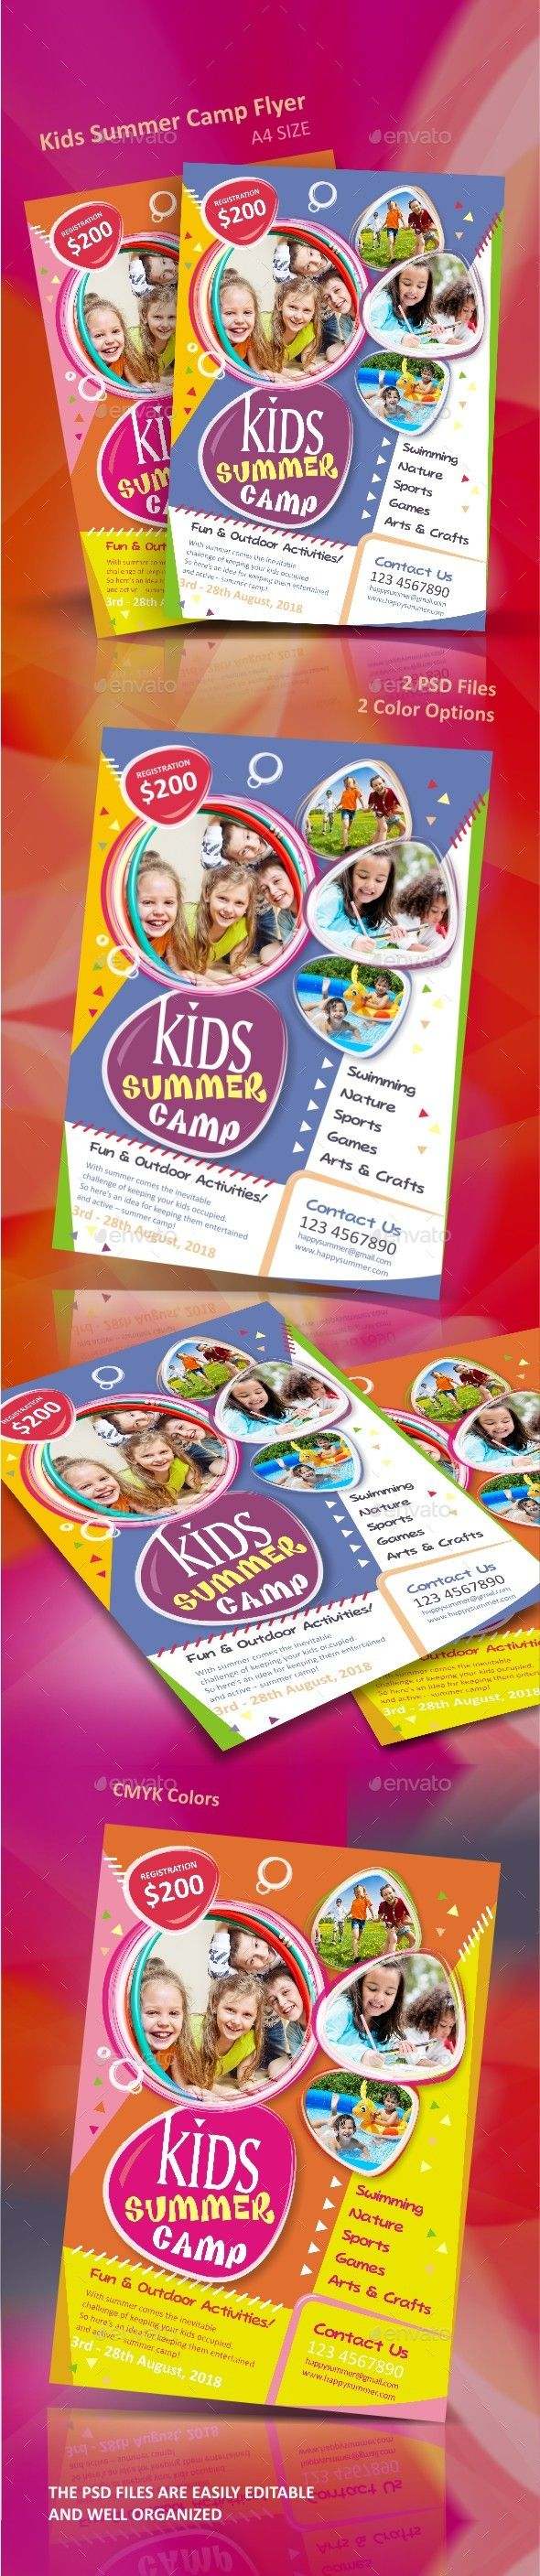 ideas about flyer template flyer design kids summer camp flyer template psd here graphicriver